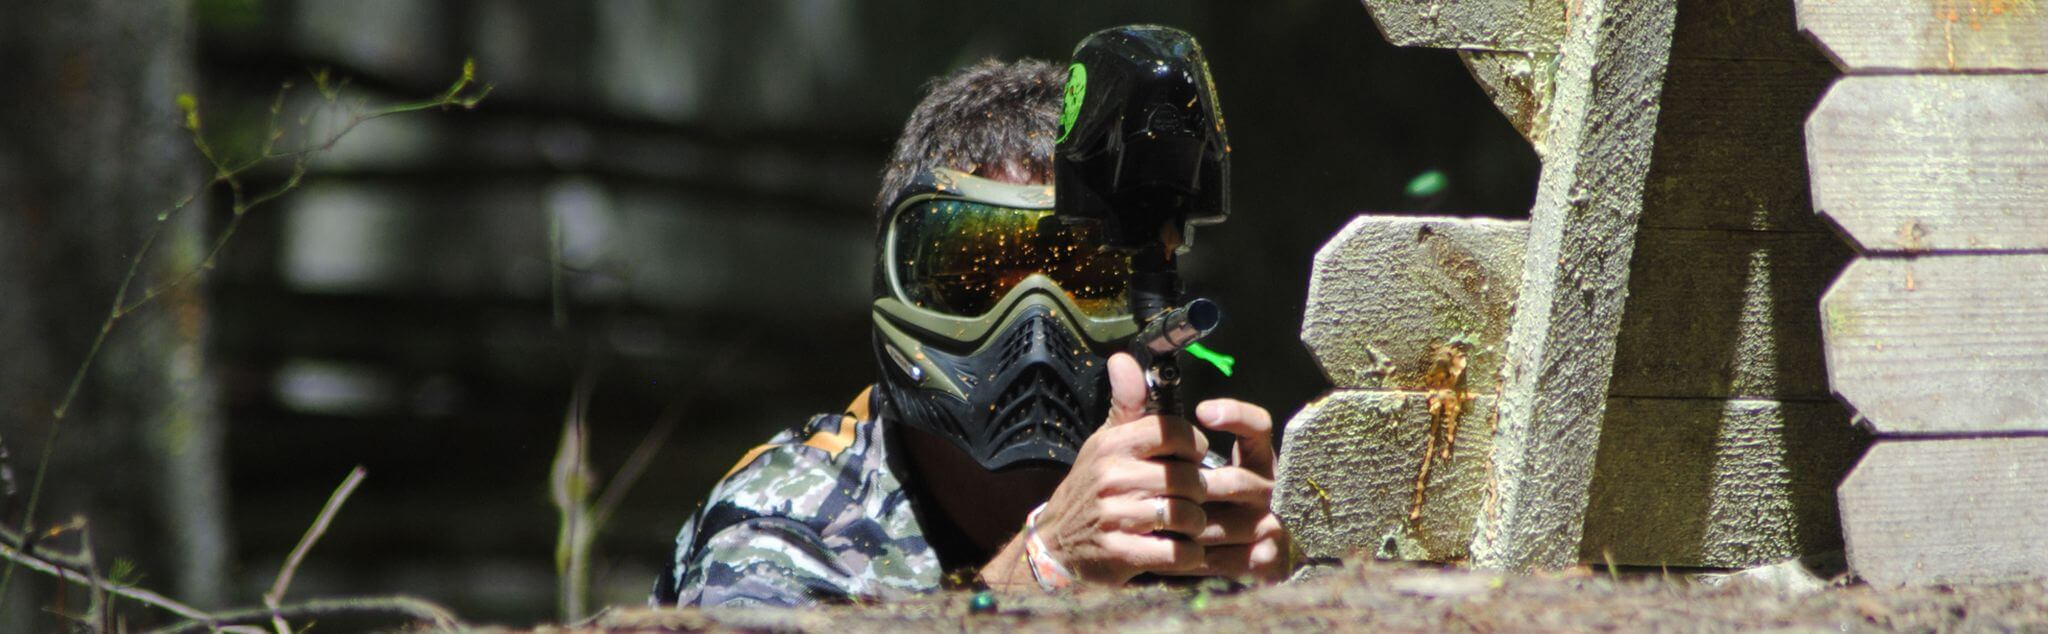 Paintball en Valderrobres